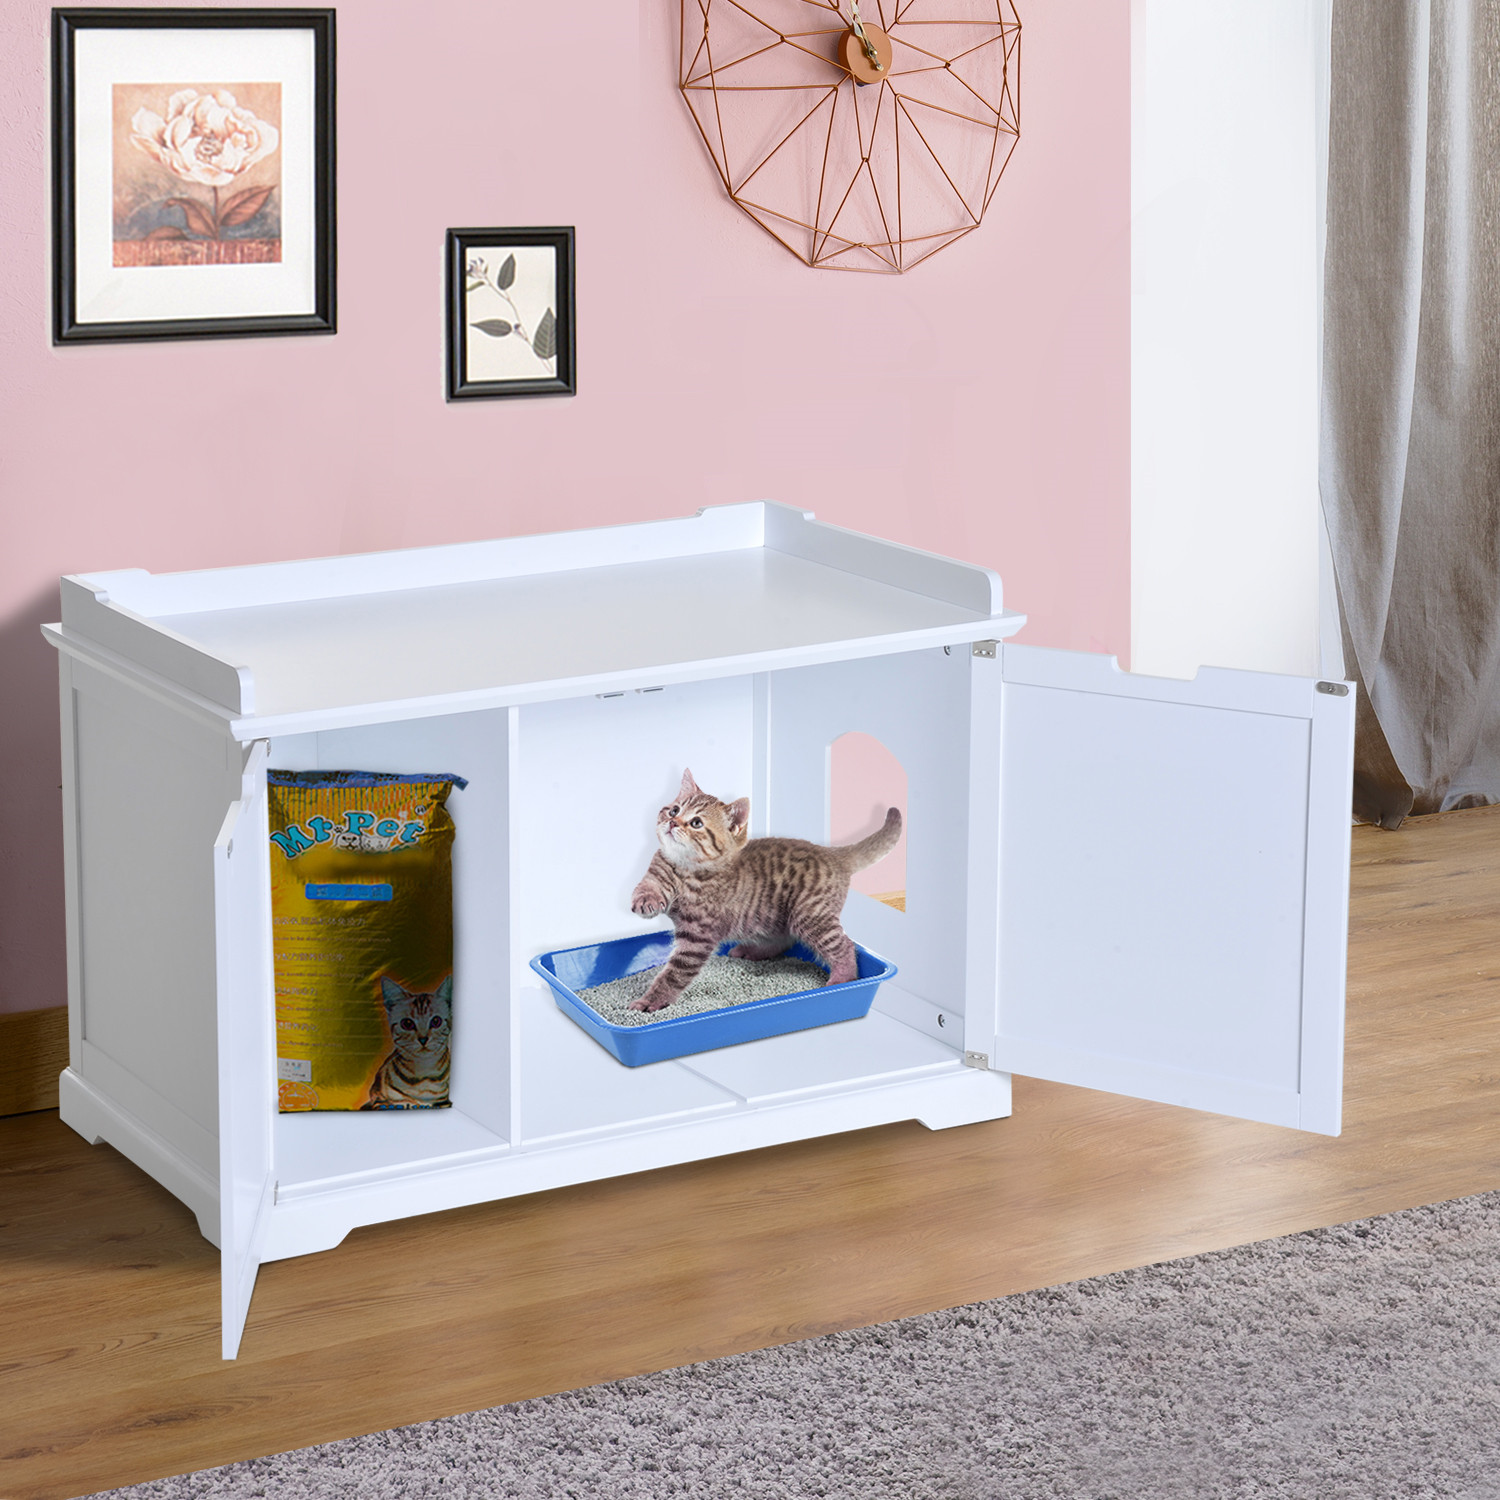 Pet Kitty Hidden Litter Box Enclosure Bench Hall End Table Cat Cabinet